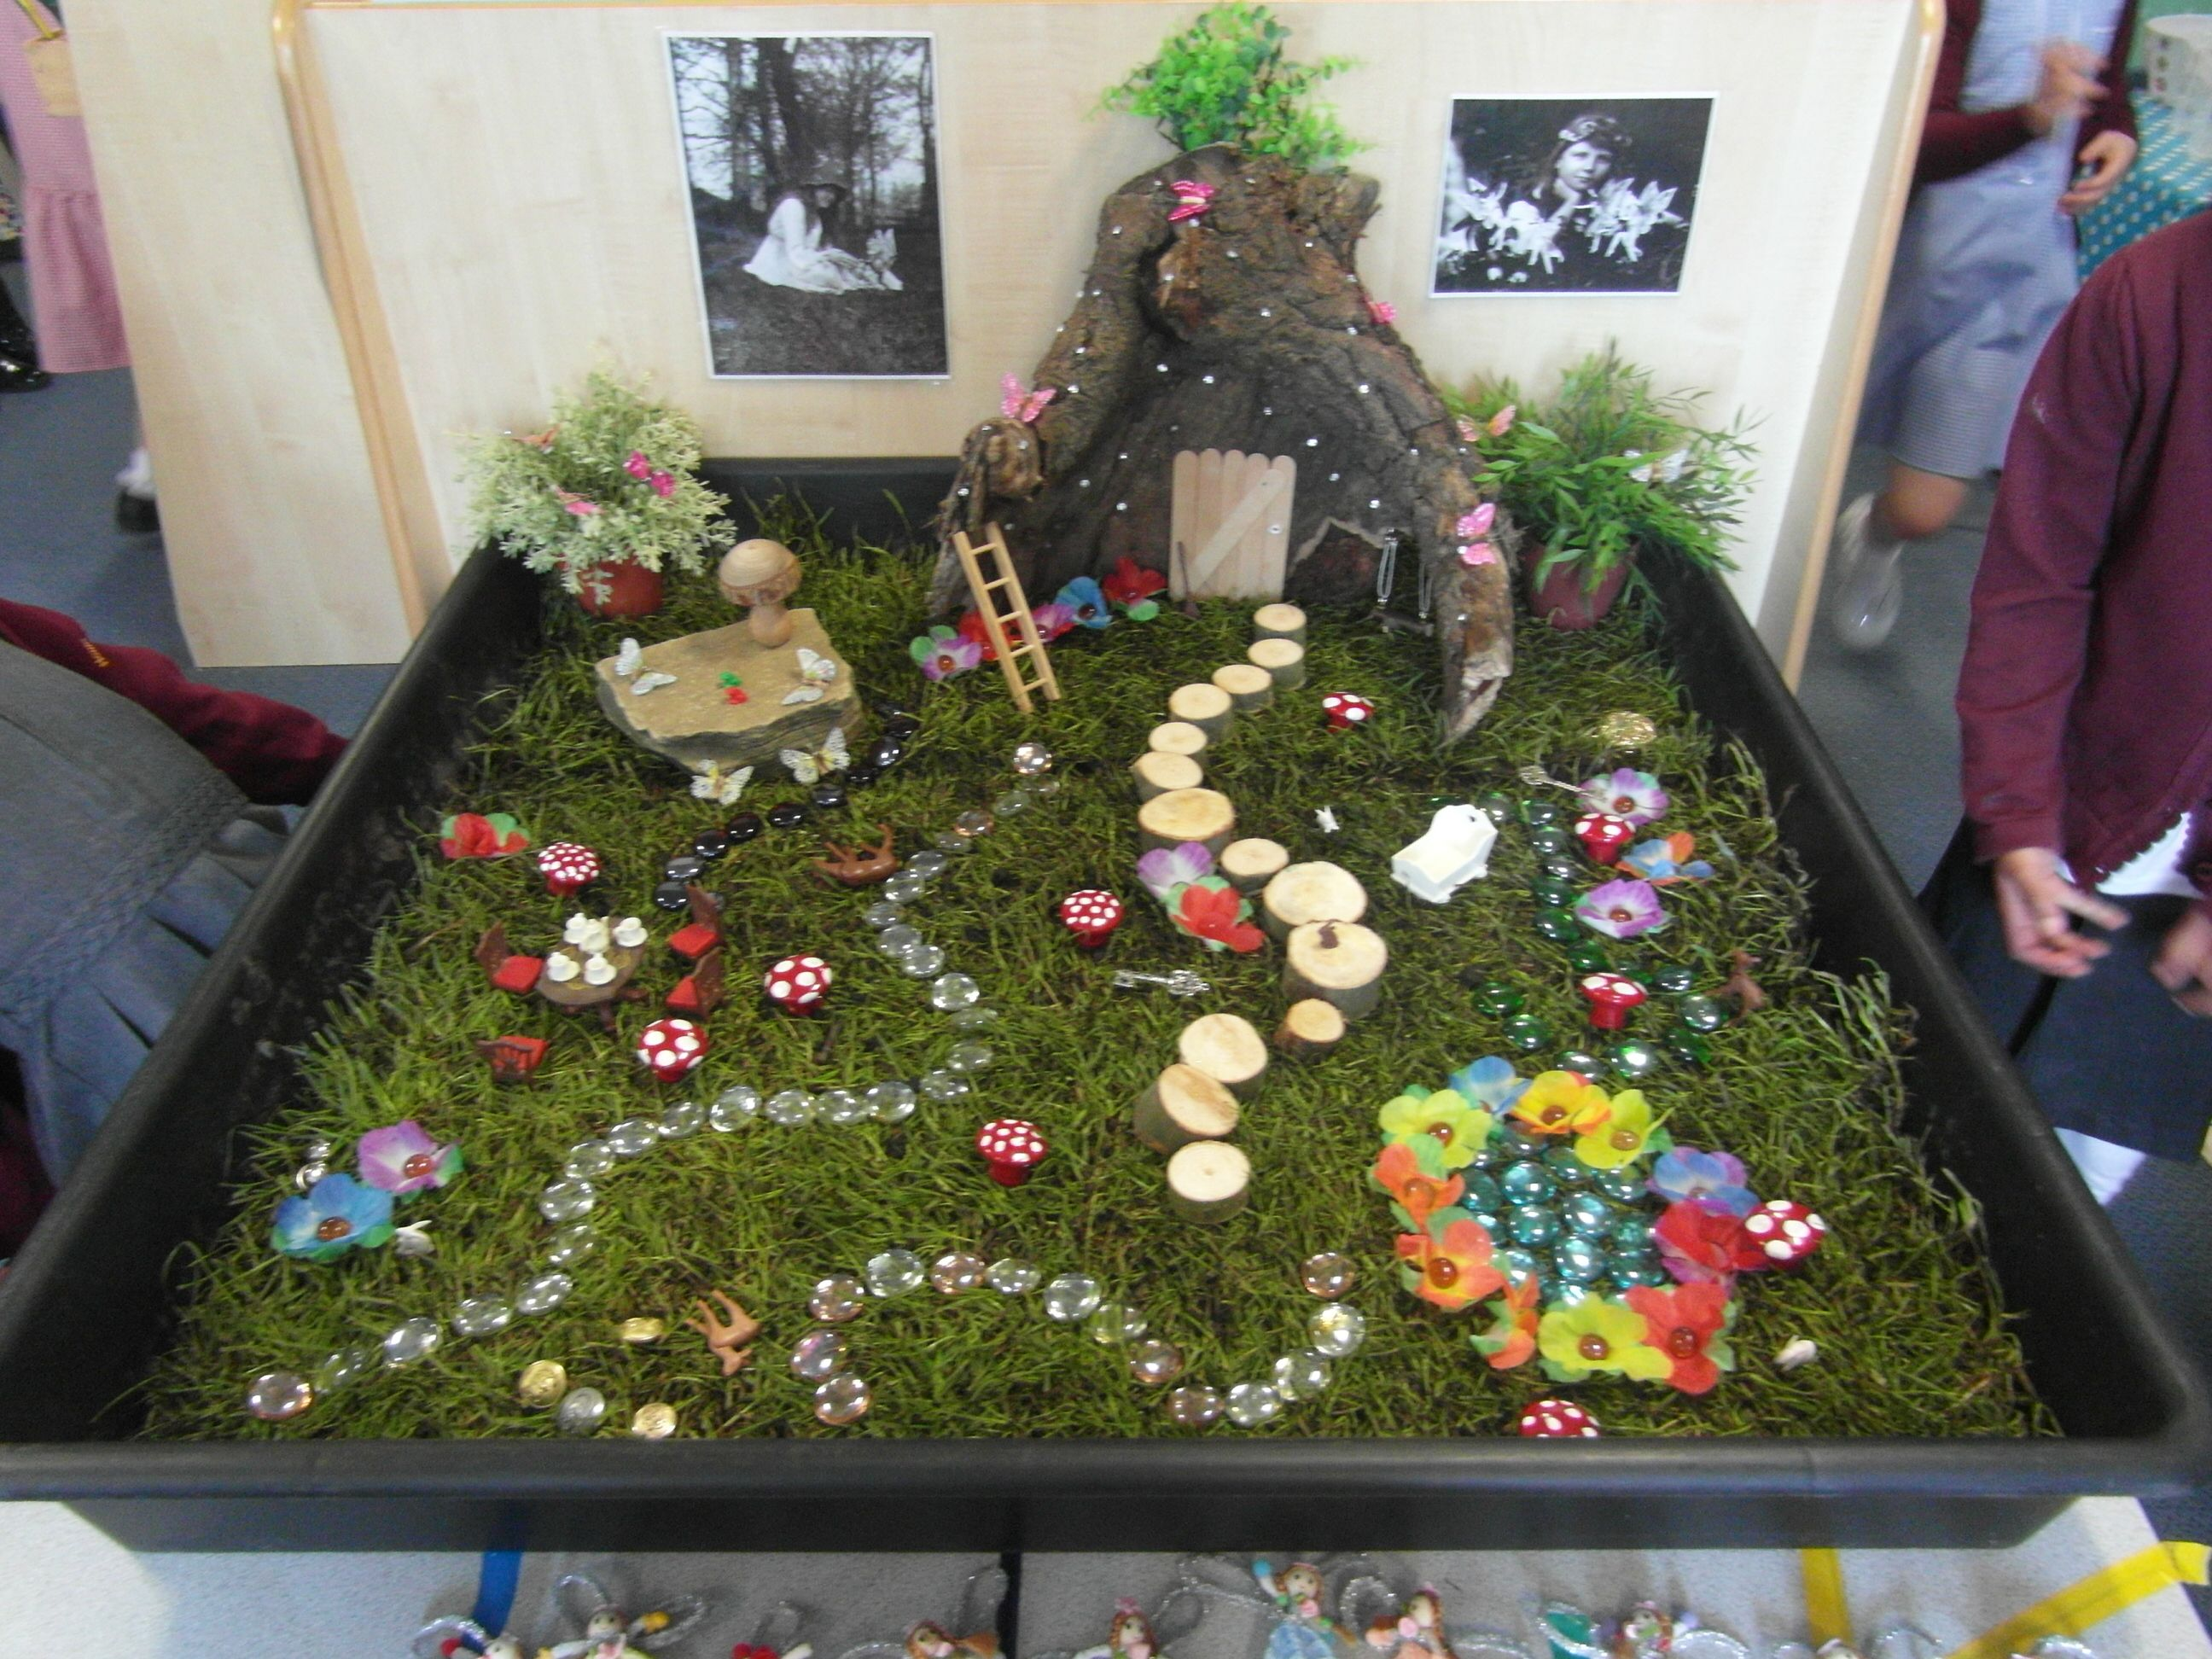 17 best ideas about large fairy garden on pinterest diy fairy house fairies garden and mini fairy garden